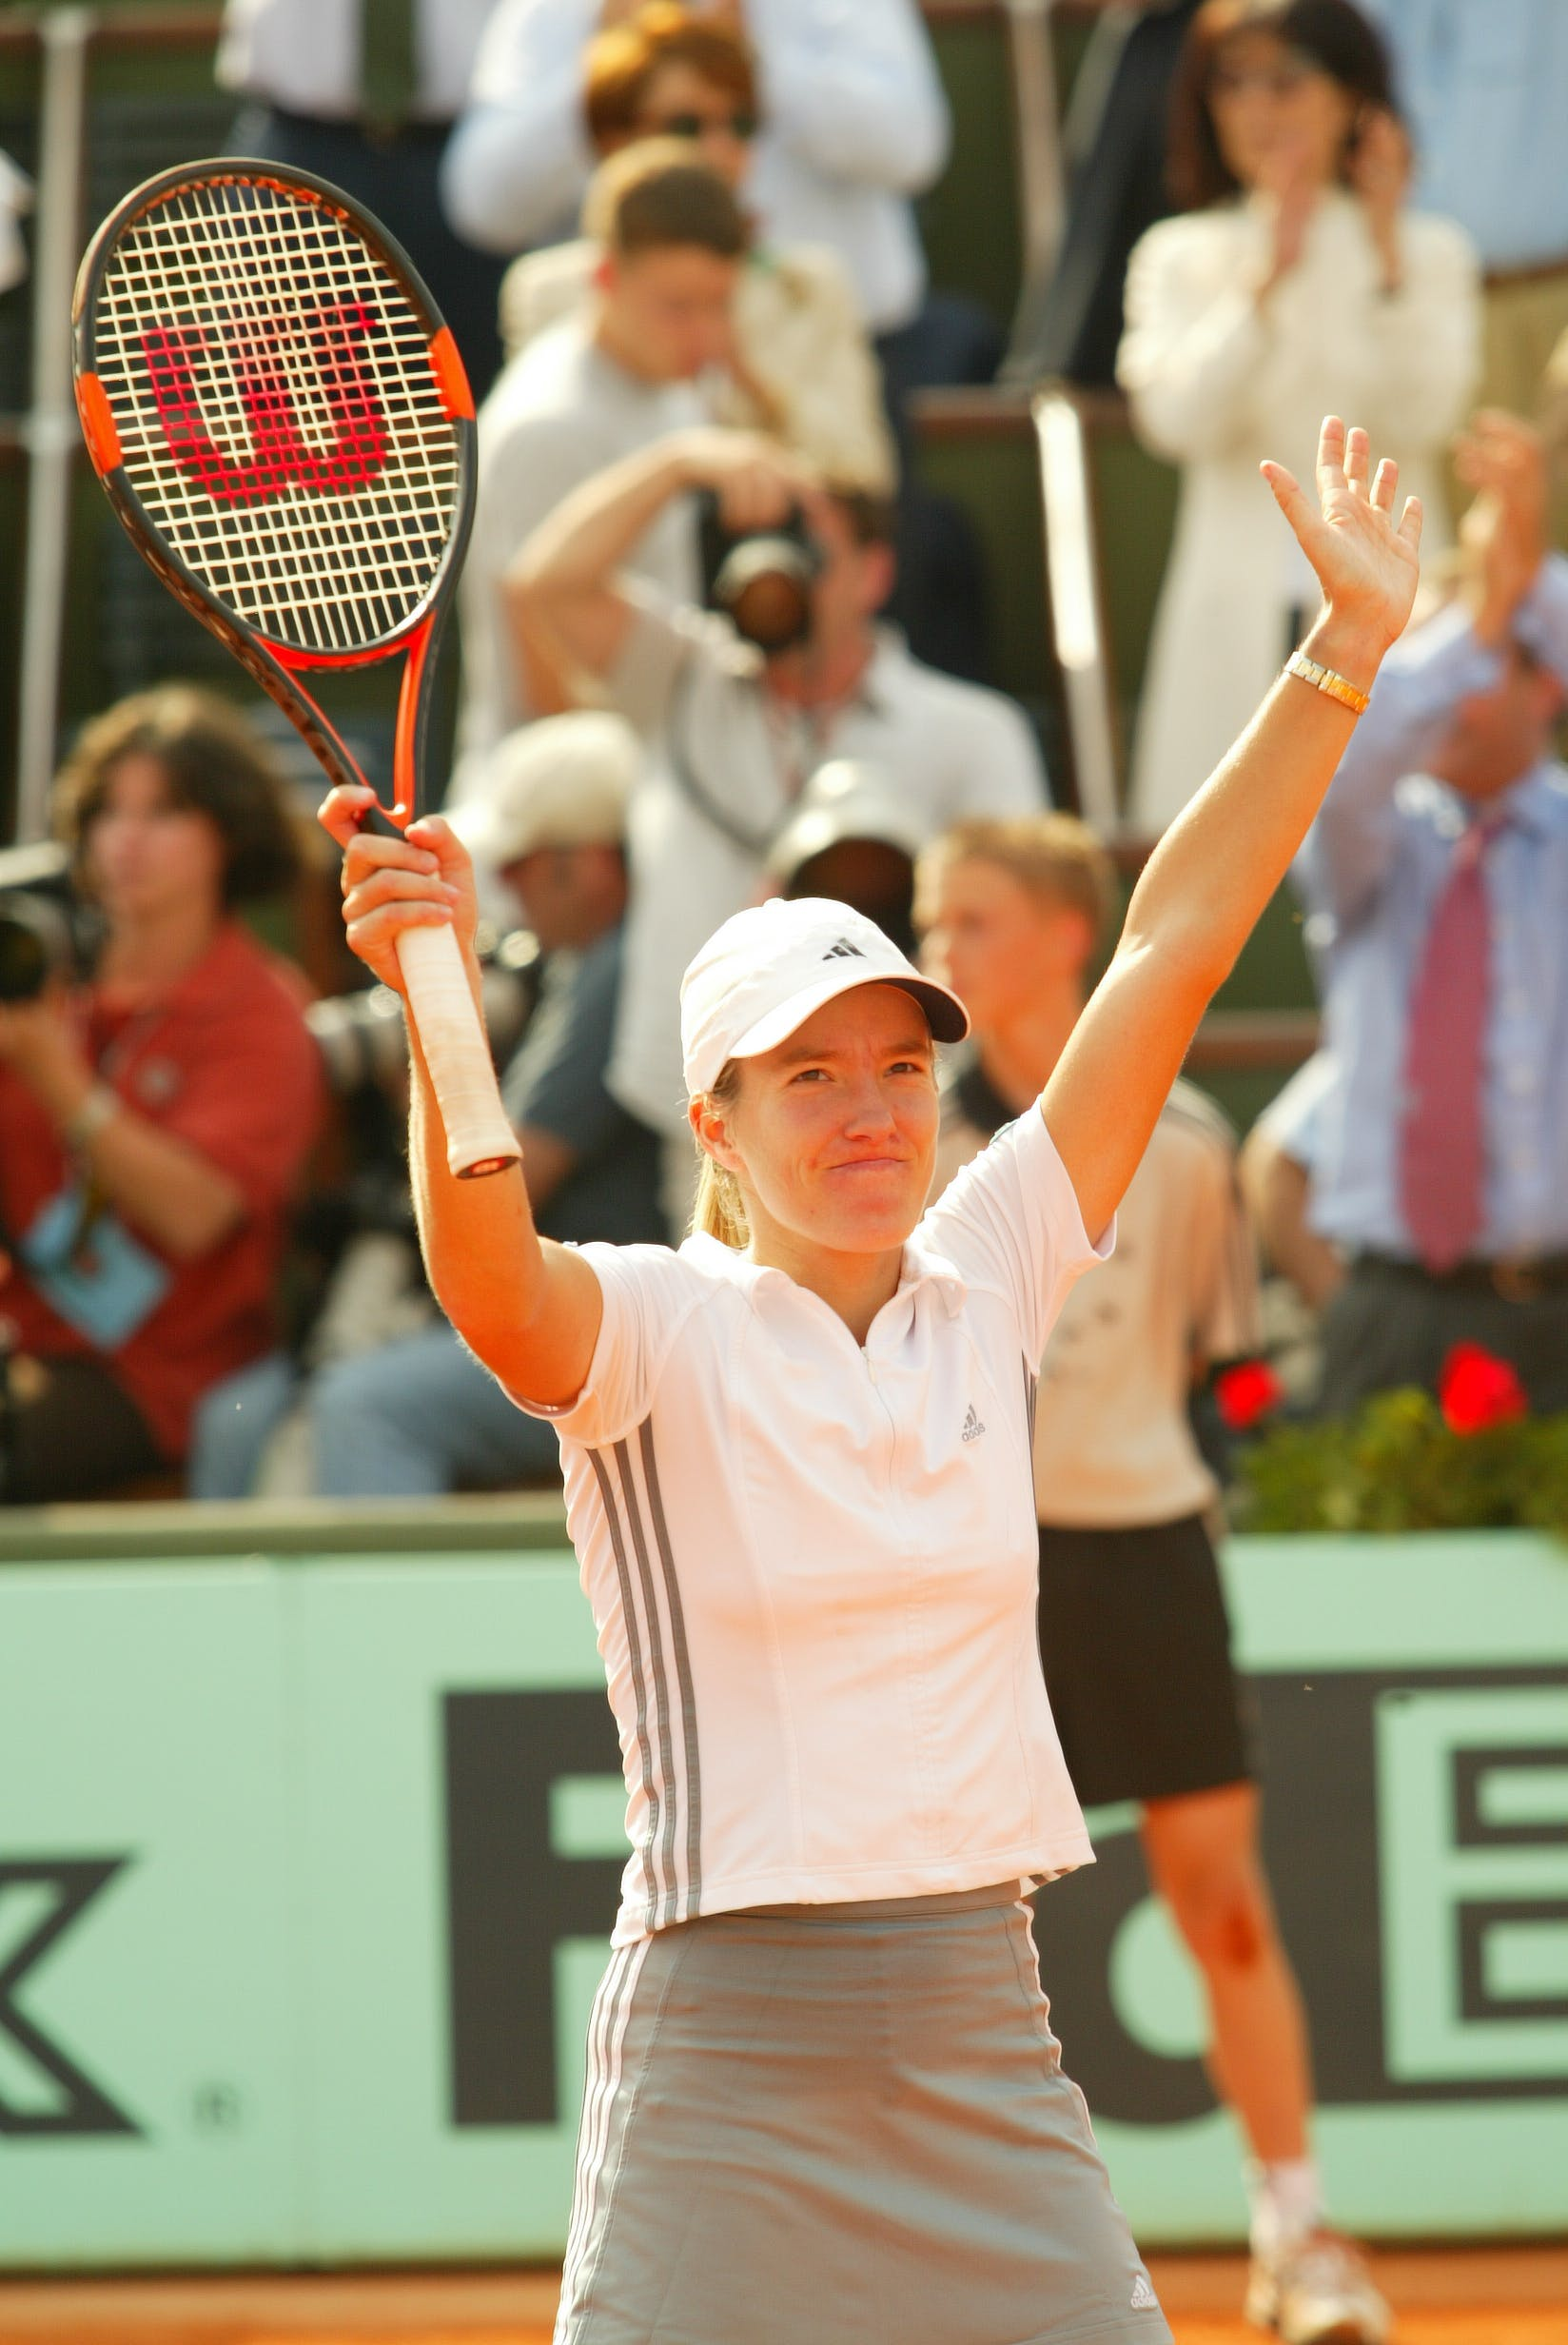 Justine Henin after her victory against Serena Williams at Roland-Garros 2003